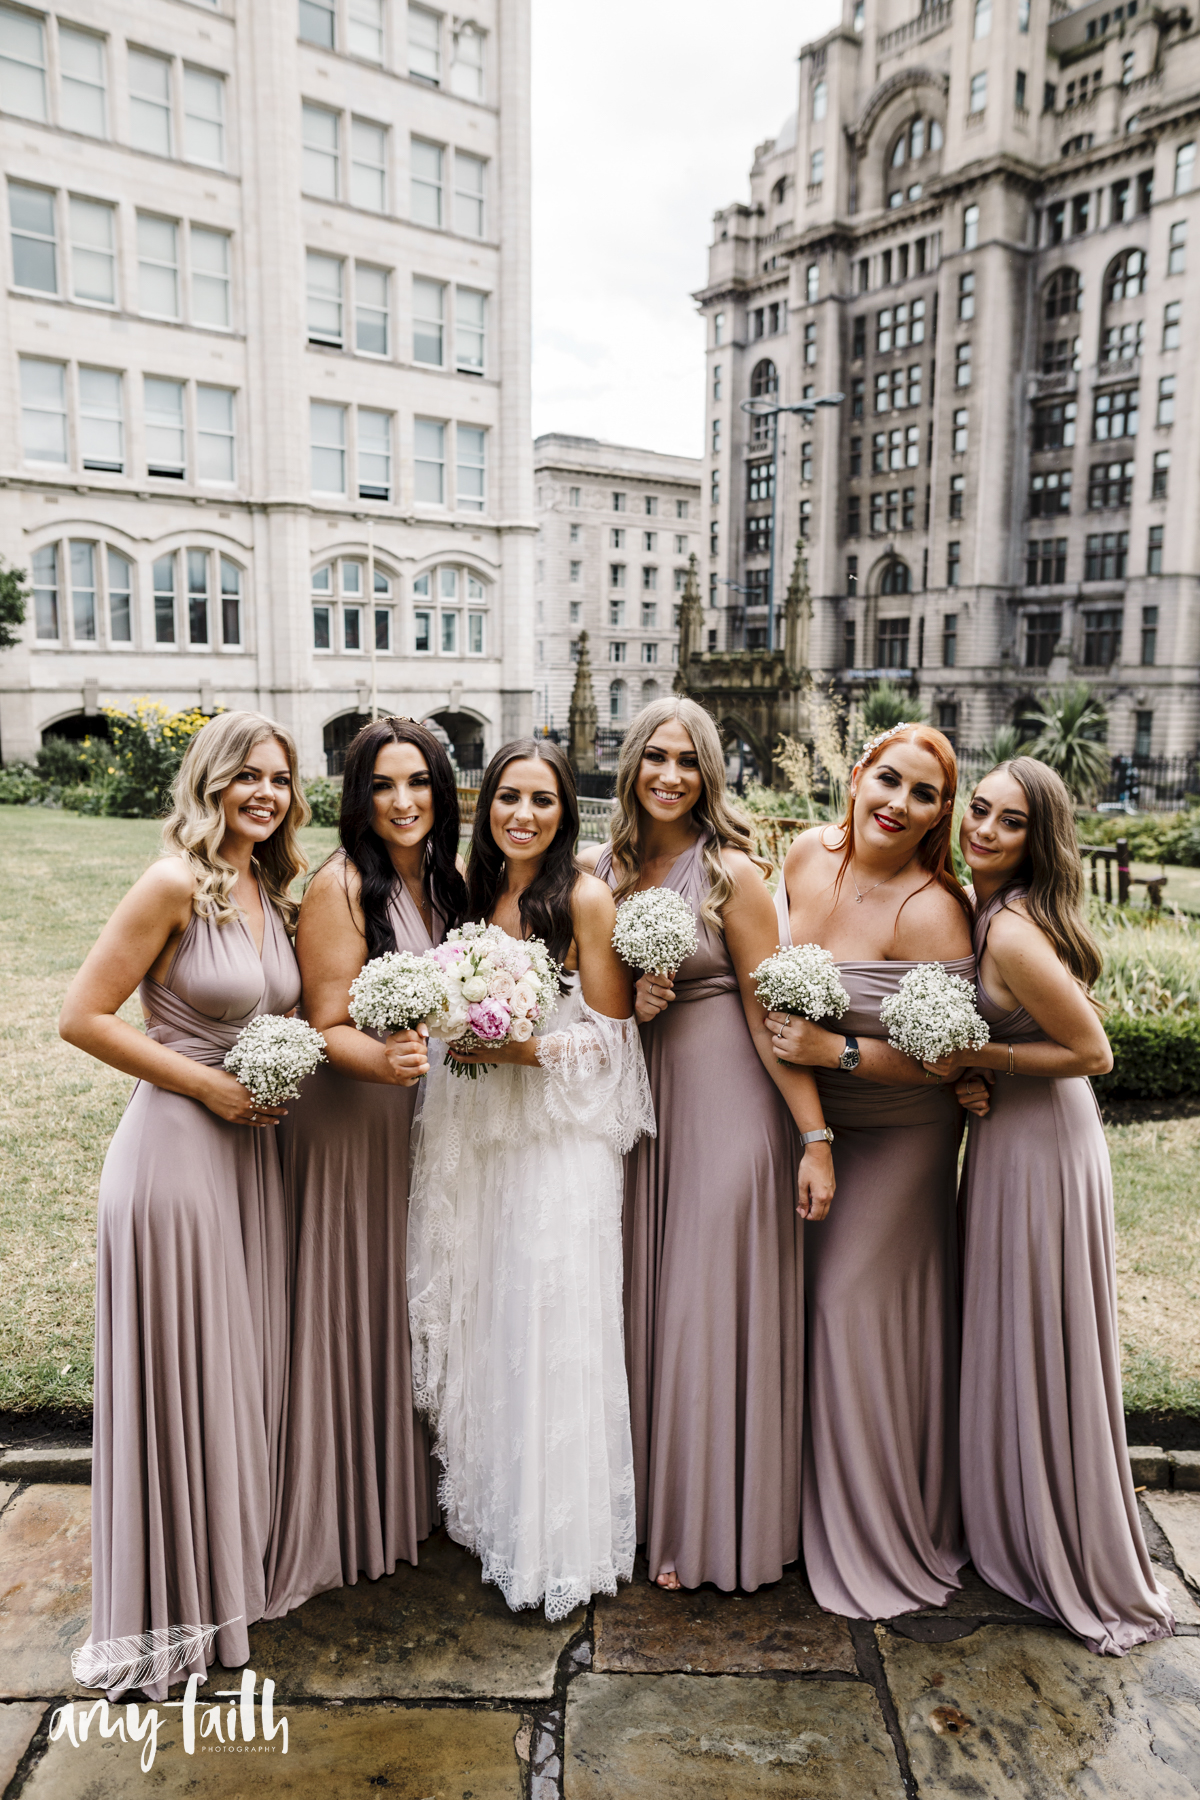 Bridesmaids in dusky pink dresses.